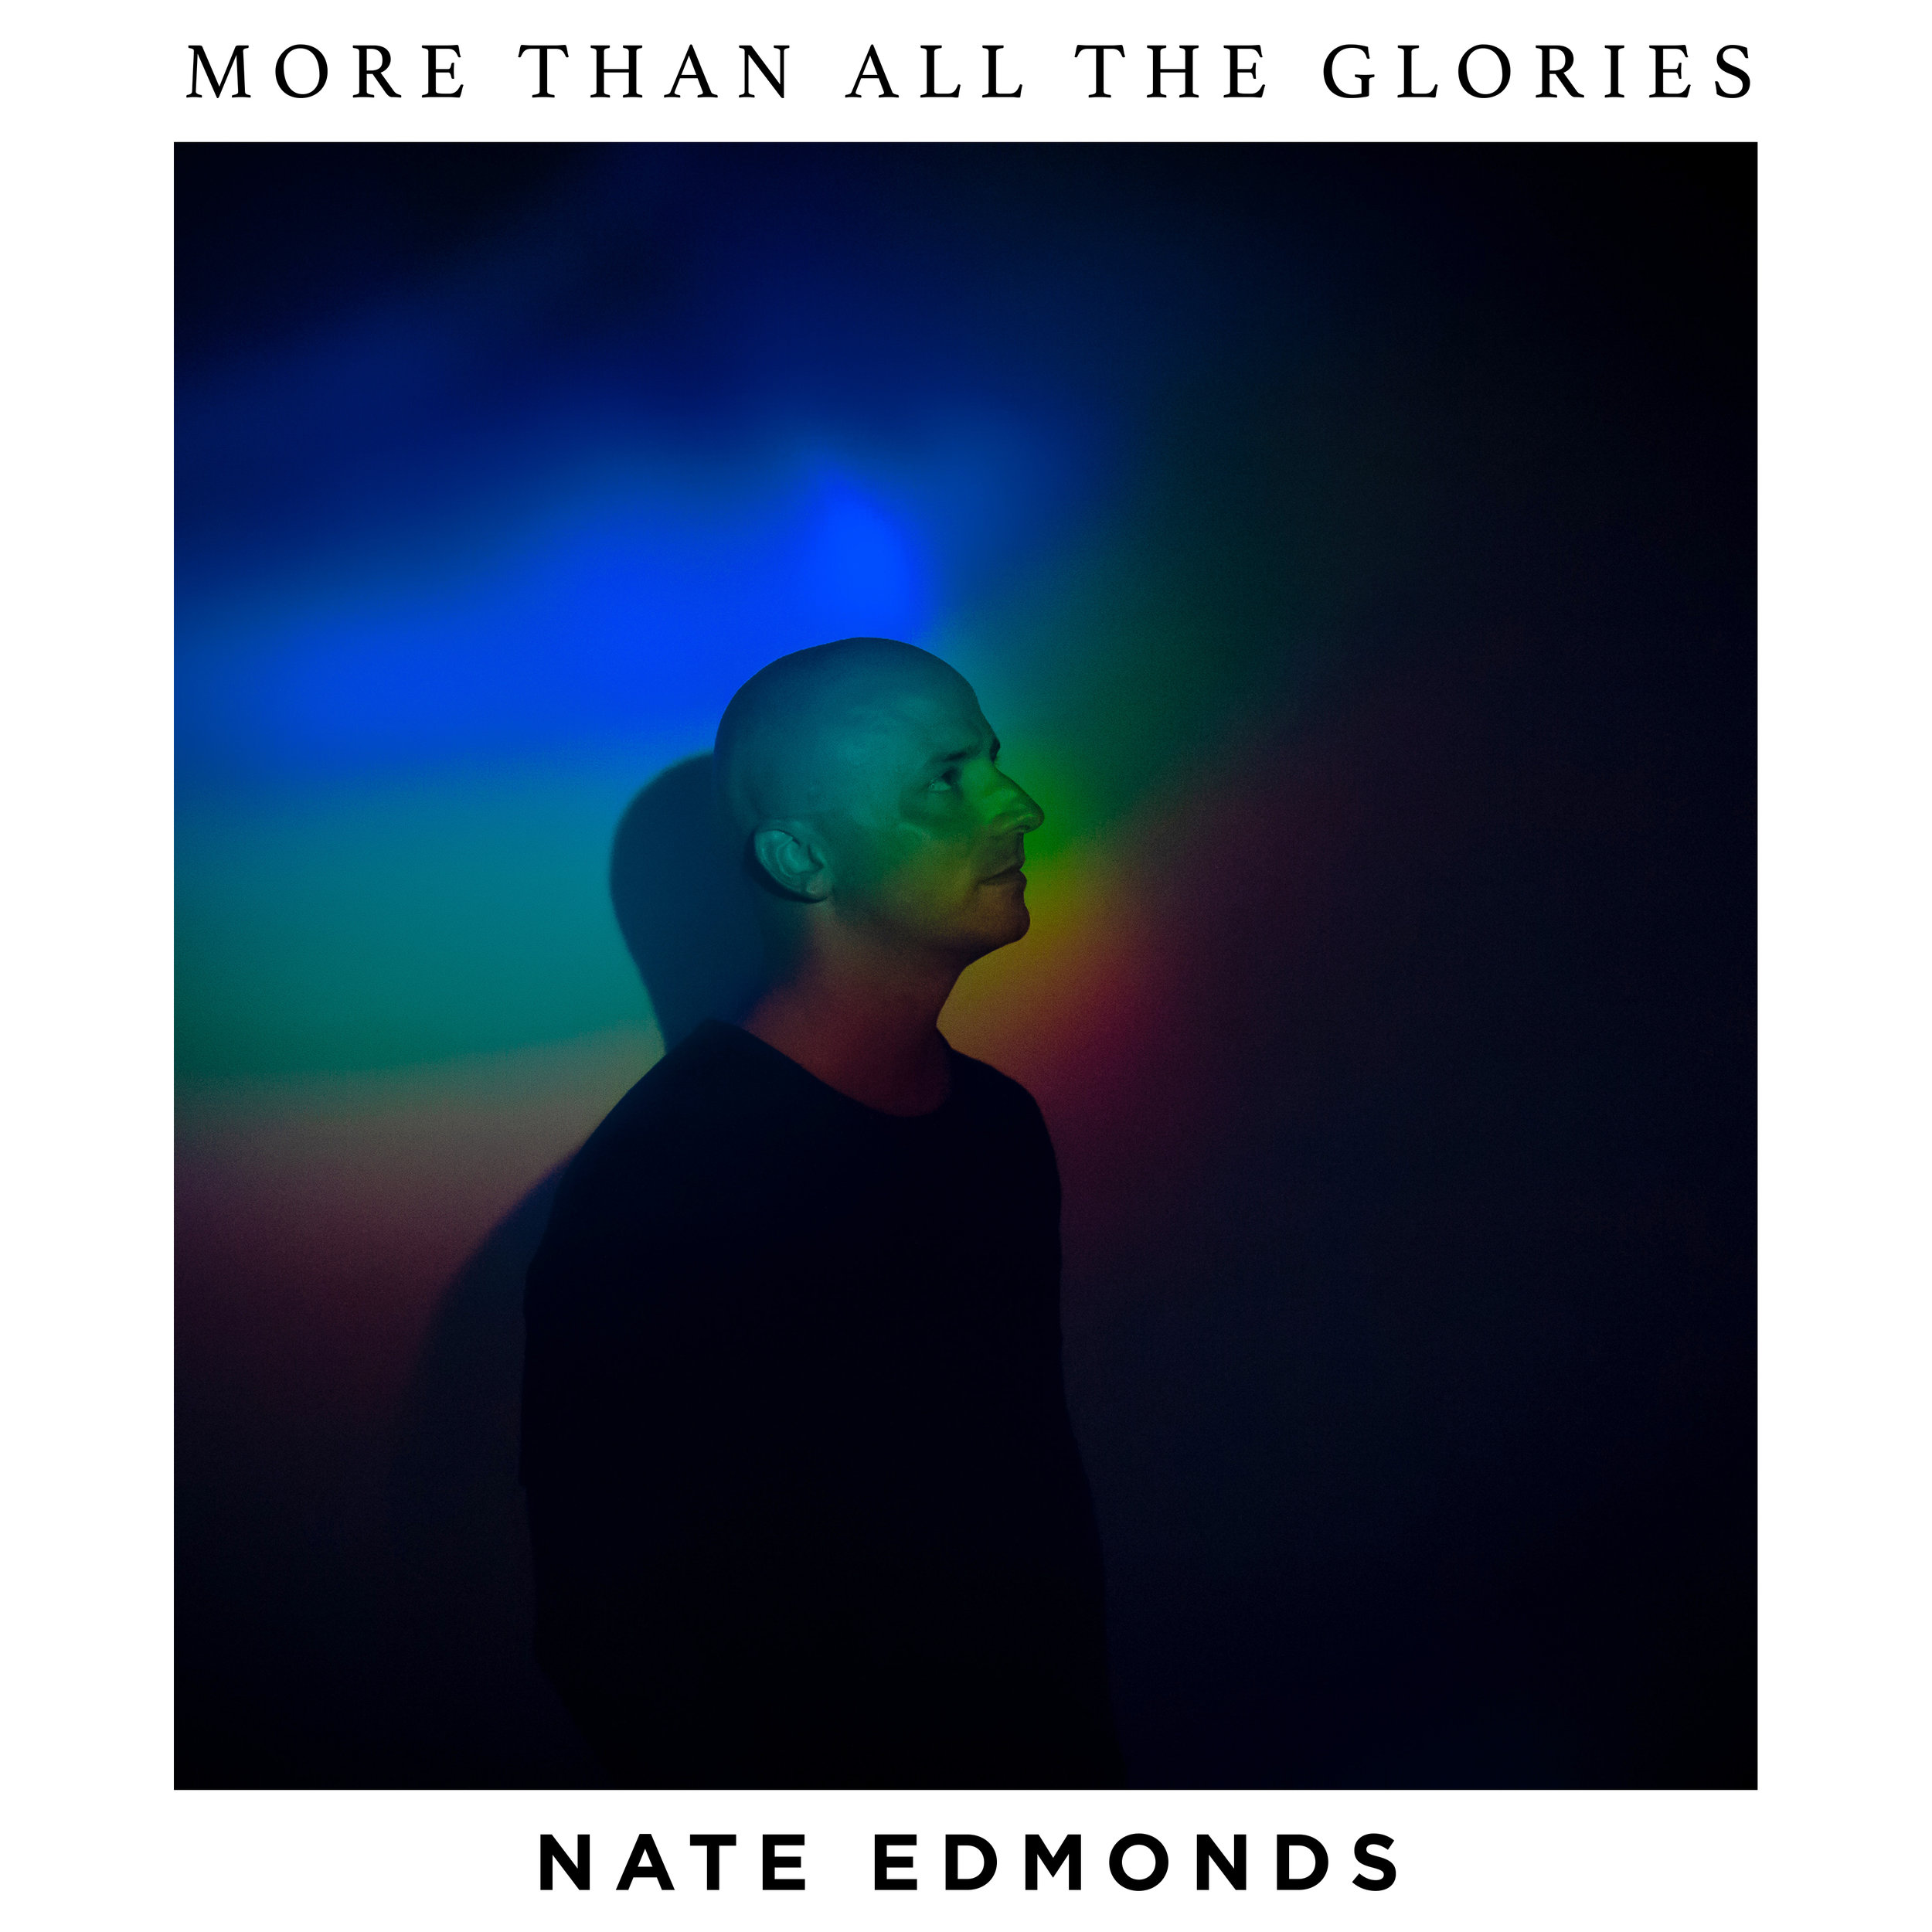 MORE THAN ALL THE GLORIES - EP - The music behind the storyThe MORE THAN ALL THE GLORIES EP is the passionate soundtrack to the memoir. The stories and life lived behind these songs are more than inspirational. They represent a journey full of faith and trust in God, even in the darkest of valleys.AVAILABLE NOW on all digital music platforms!